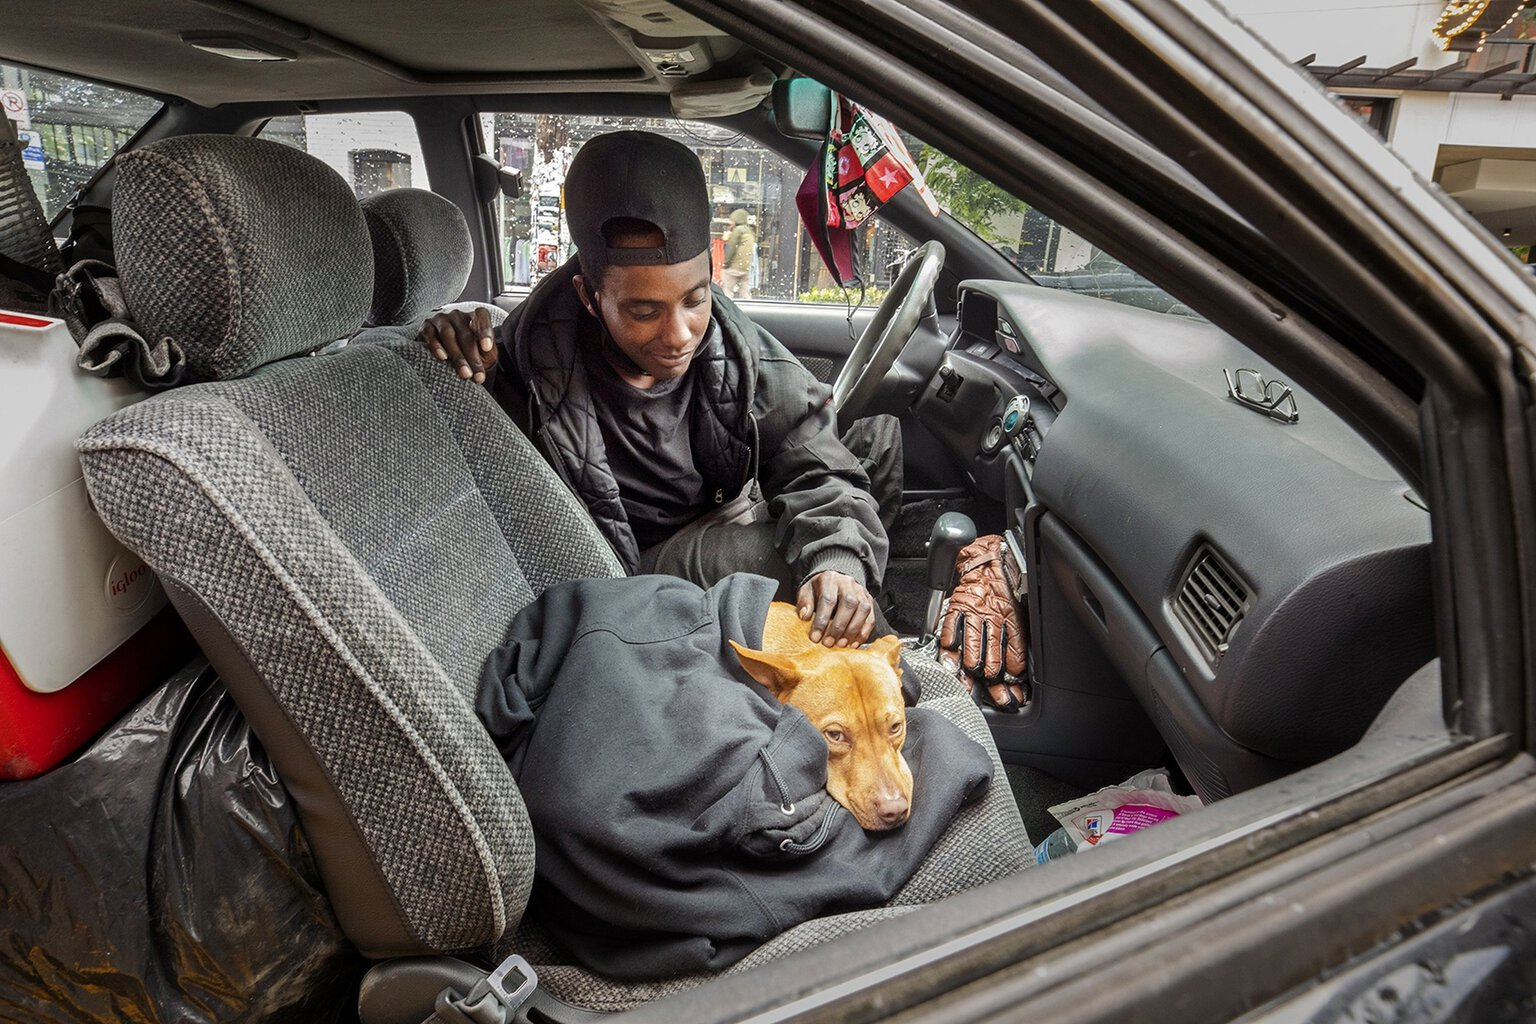 A woman and her dog live in her car together.